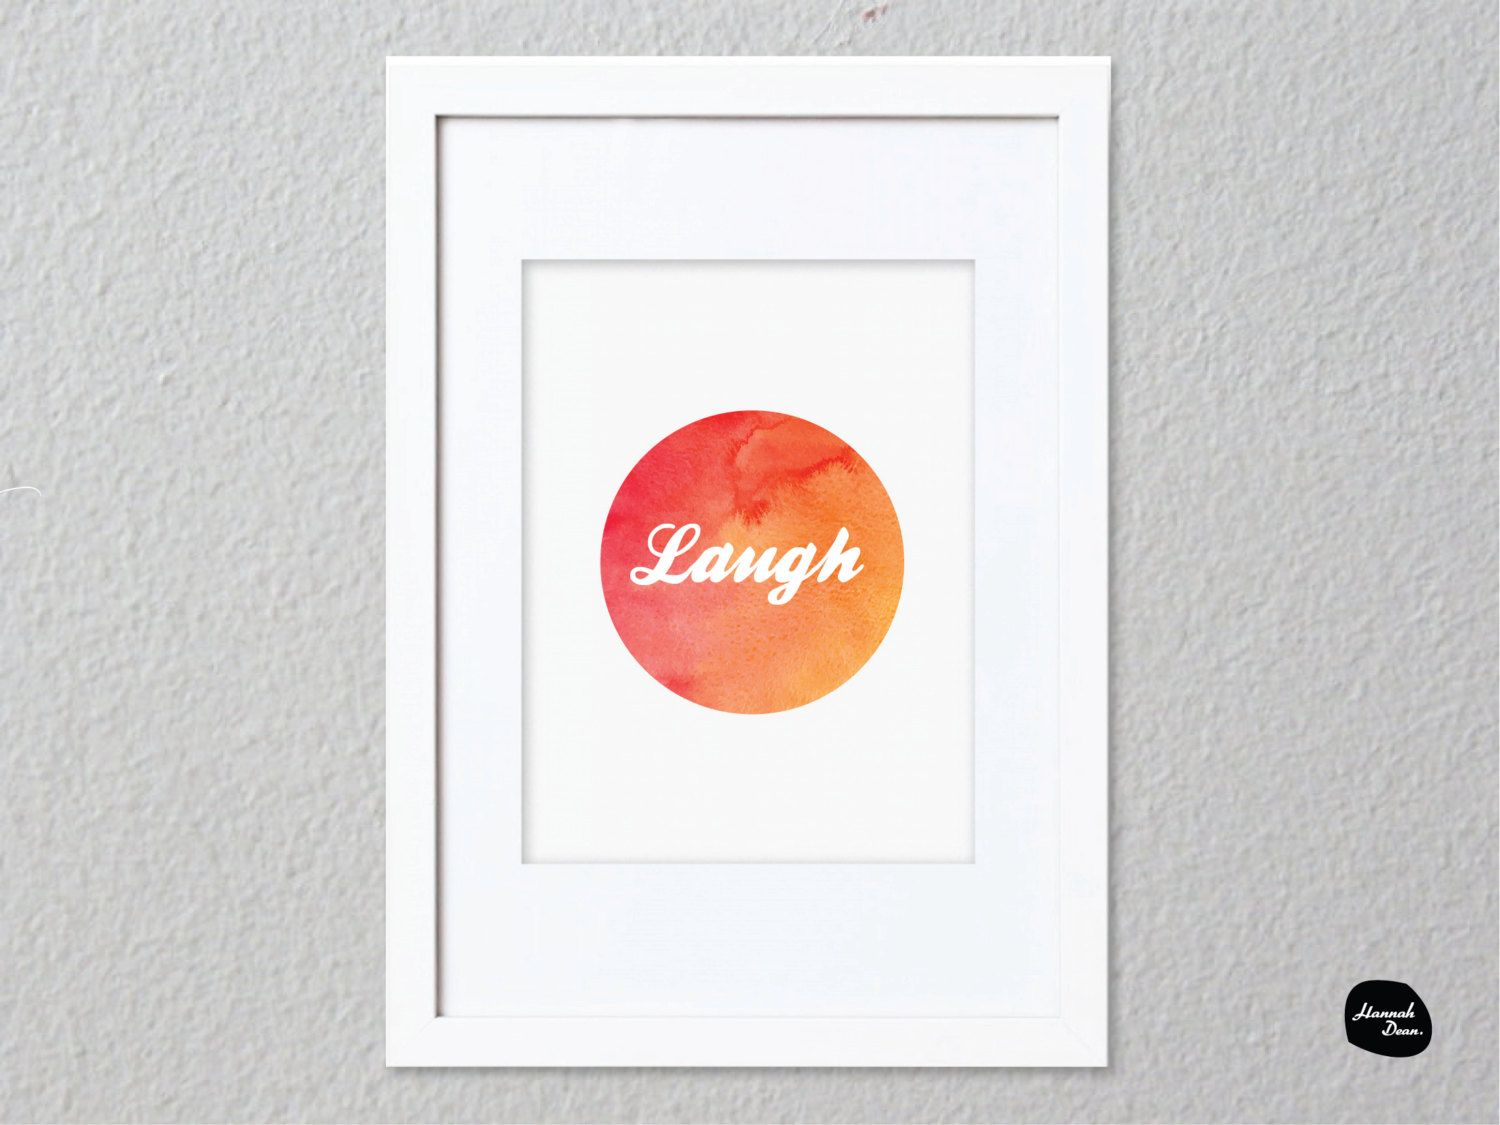 LAUGH WALL ART - Home Decor Print - Laugh Circle Design by HannahDeanDesigns on Etsy